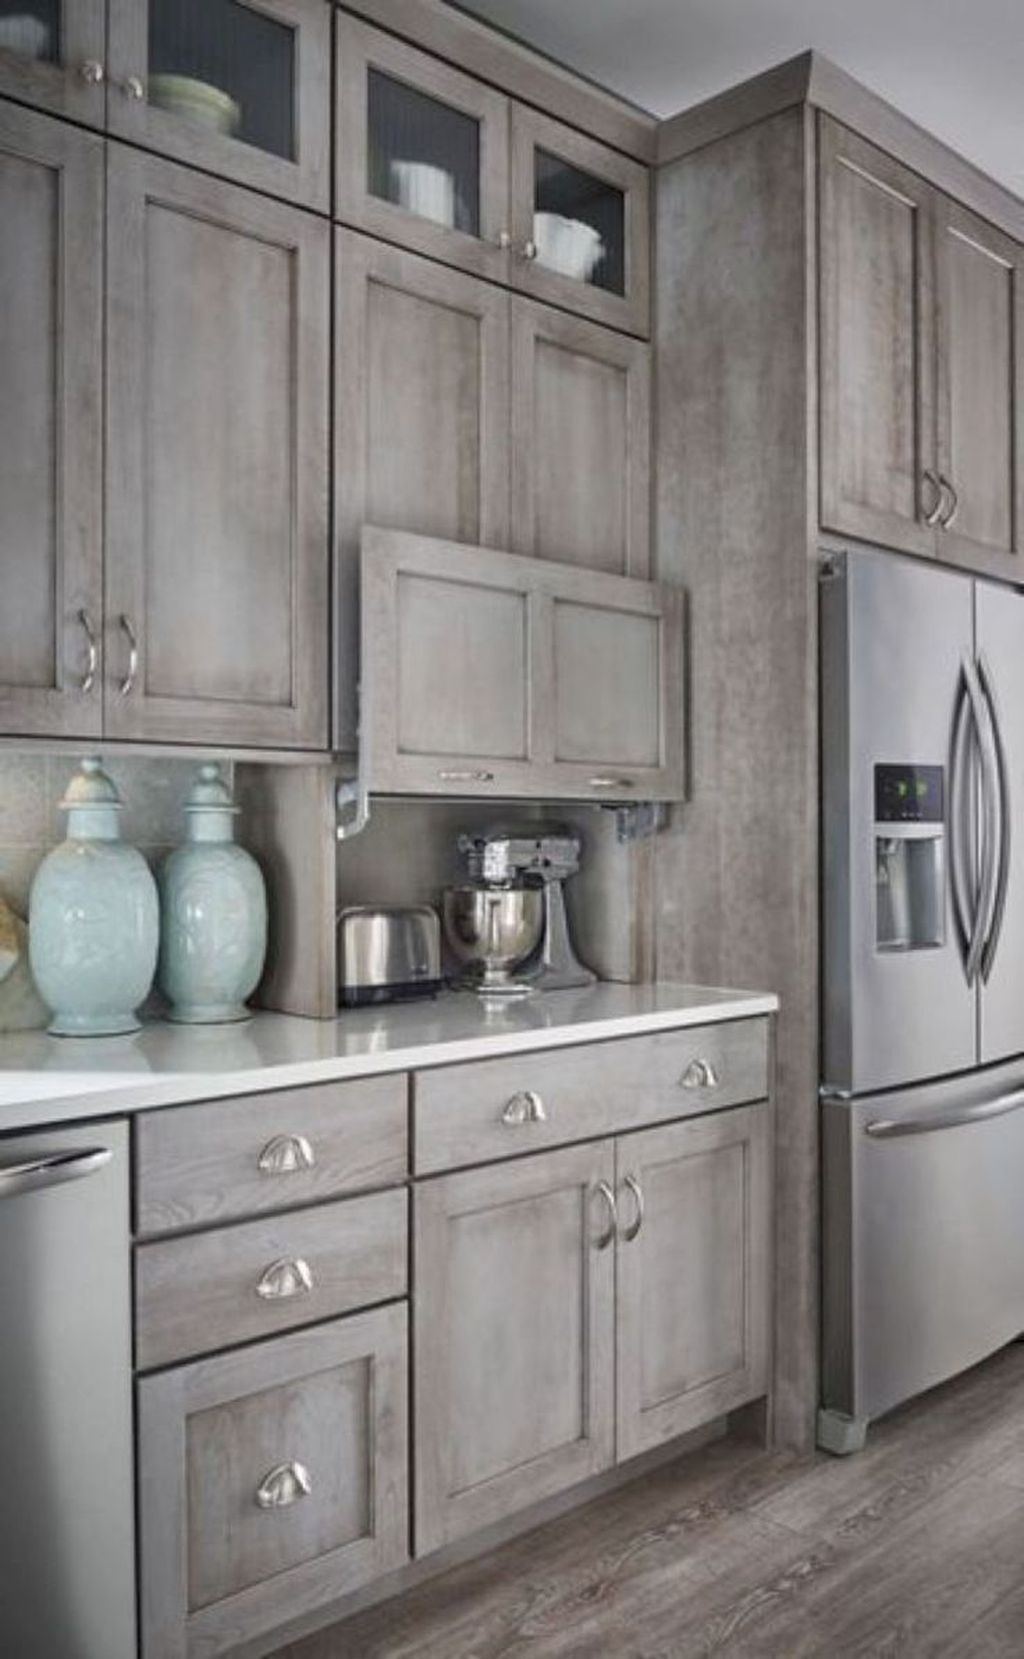 Cool 40 Awesome Rustic Kitchen Design Ideas Rustic Kitchen Cabinets Rustic Kitchen Farmhouse Style Kitchen